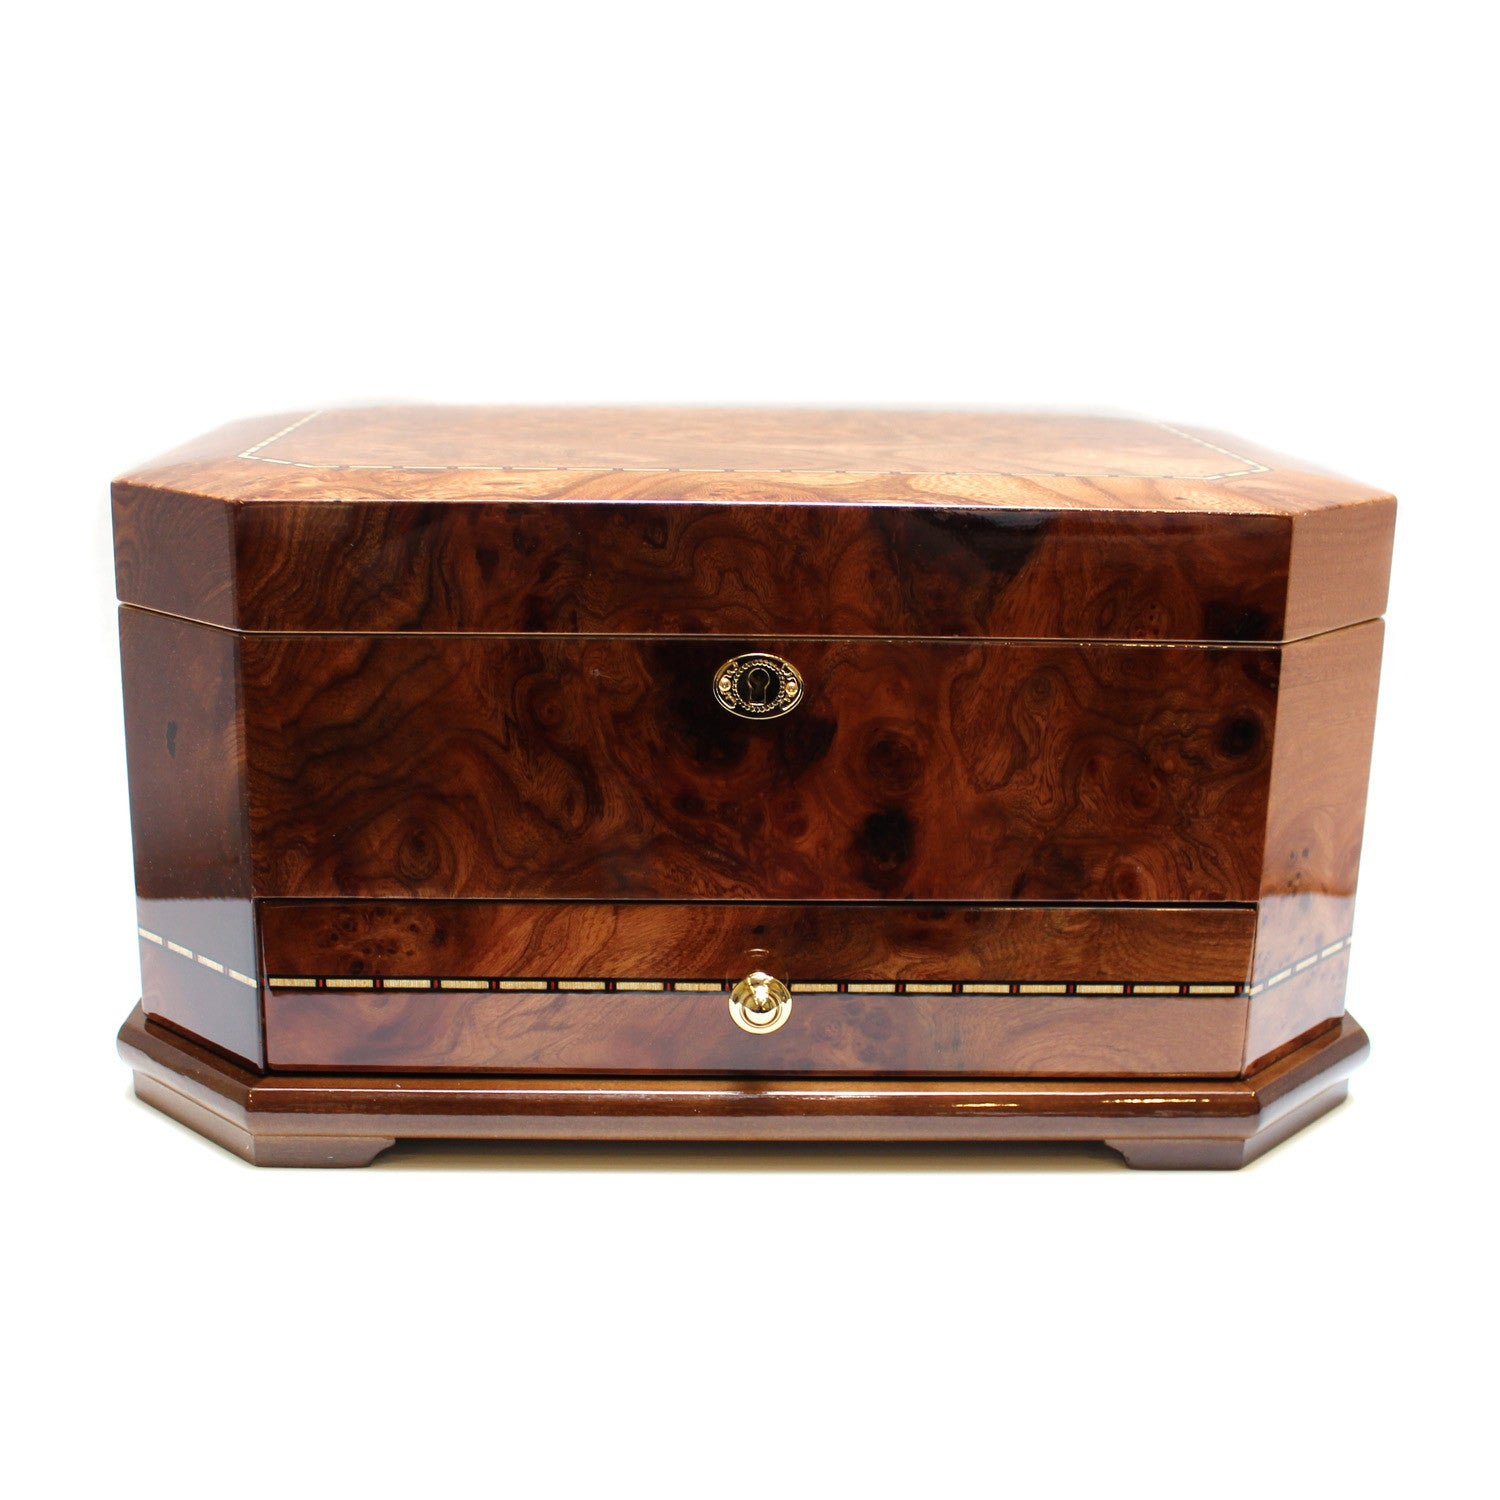 Chestnut Wood Jewelry Box with Pull Out Drawer - Desires by Mikolay